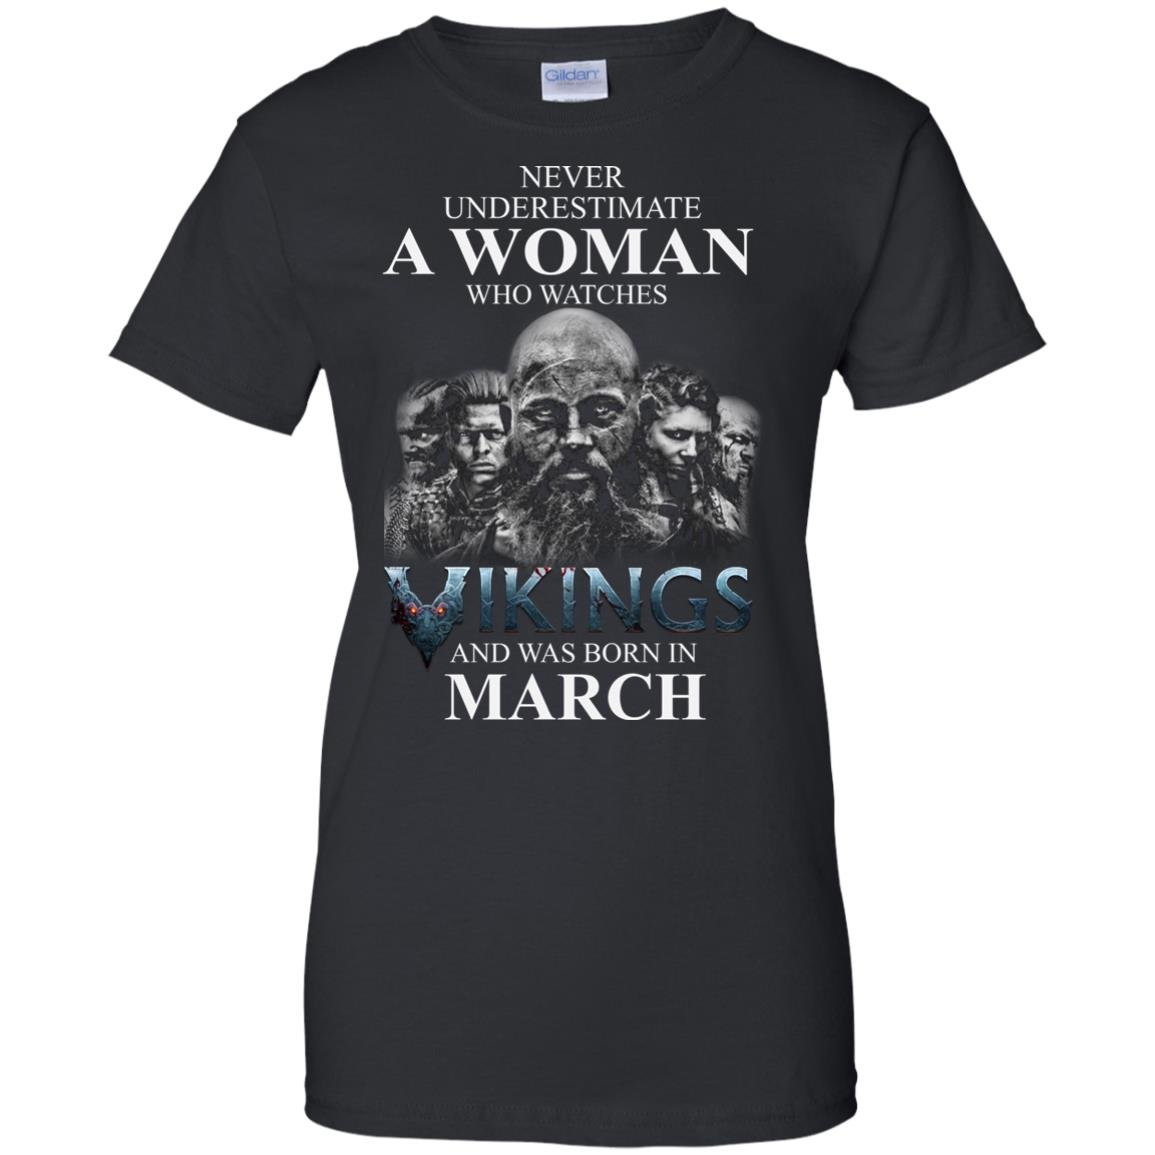 image 1337 - Never Underestimate A woman who watches Vikings and was born in March shirt